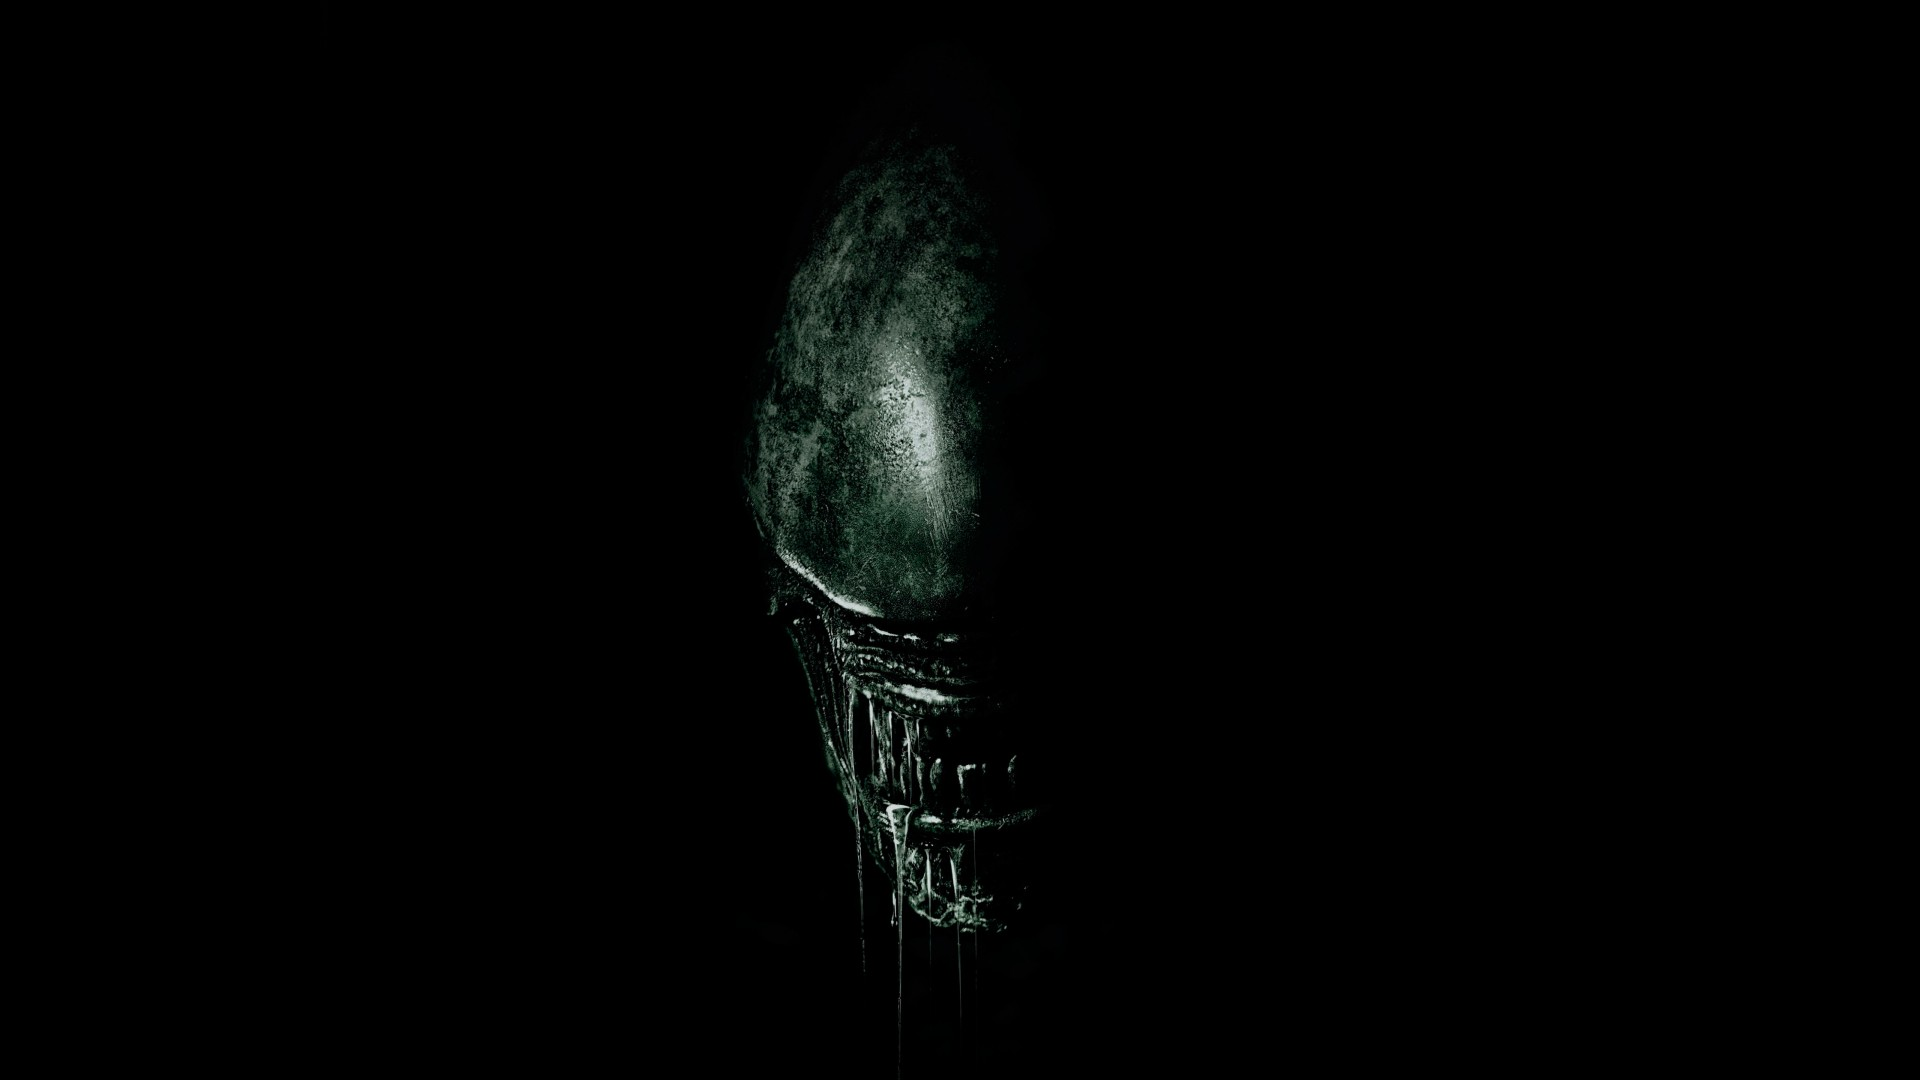 Alien Cute Wallpaper 2017 Alien Covenant 4k Wallpapers Hd Wallpapers Id 19845